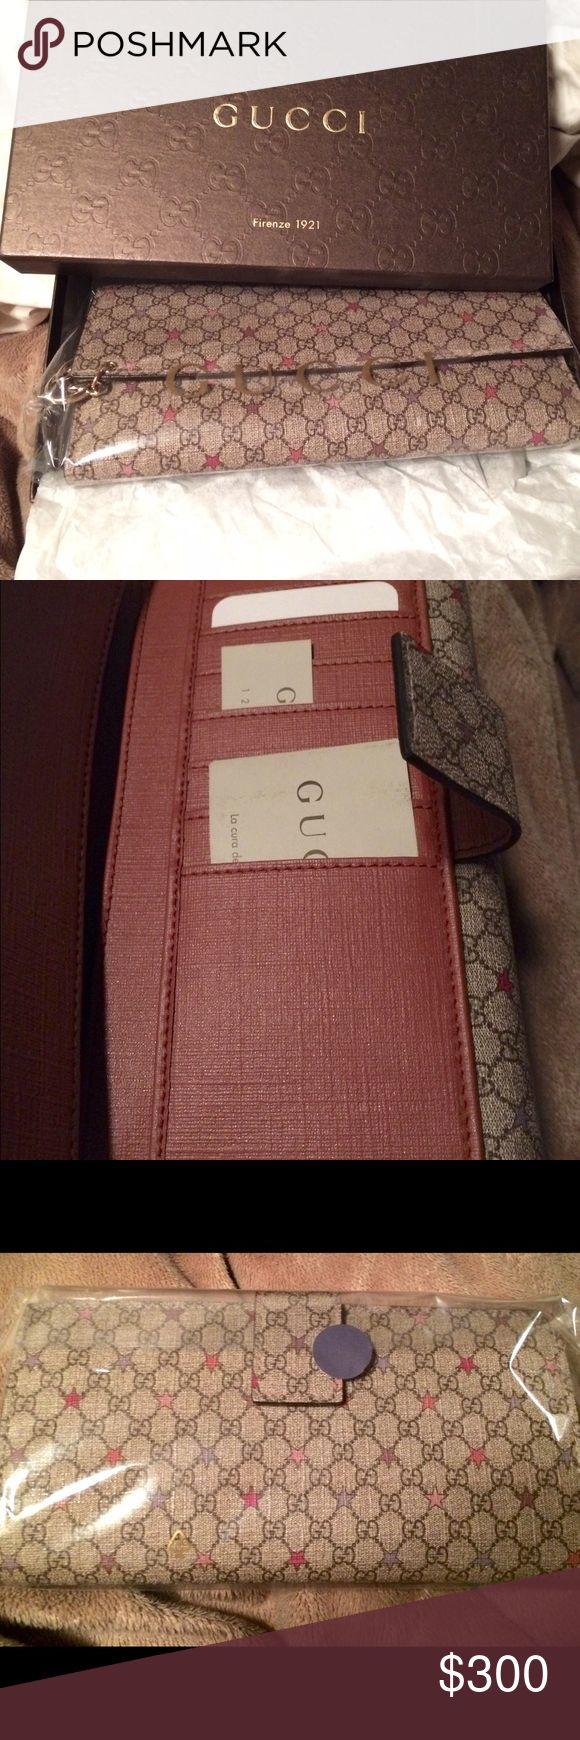 Gucci star wallet GG Supreme Canvas Continental Star print wallet Gucci Accessories Watches